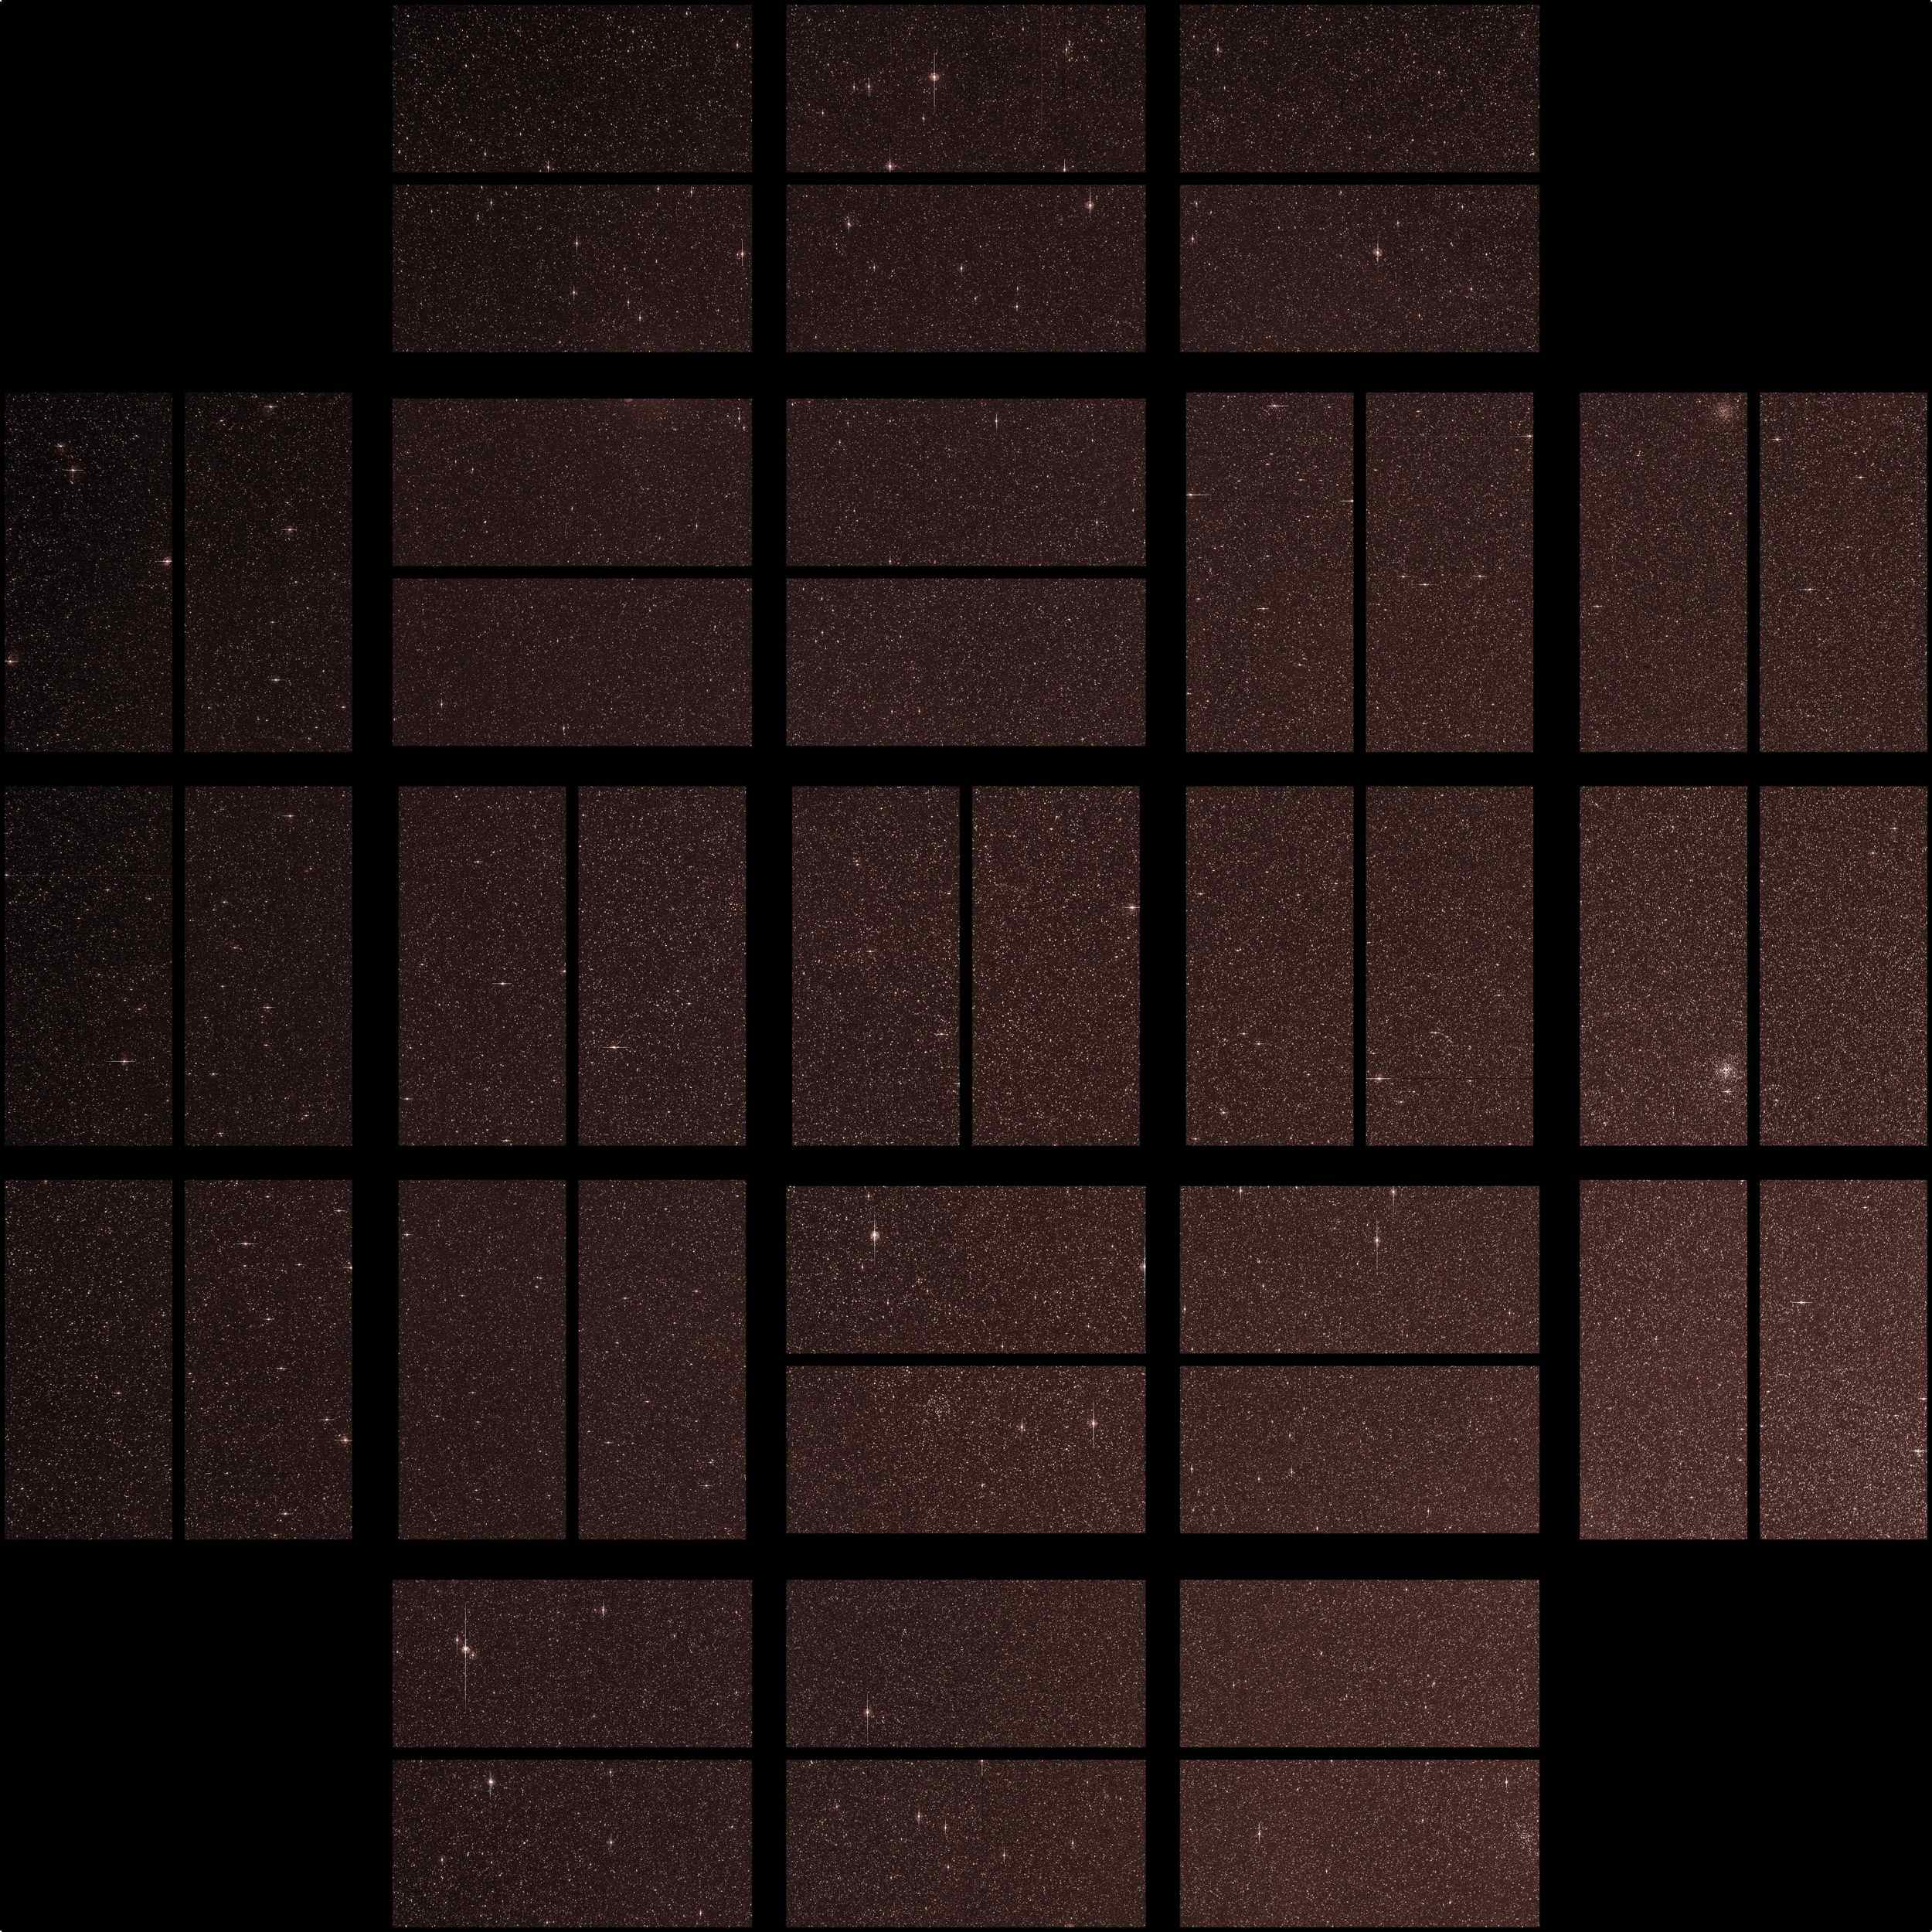 This image from NASA's Kepler mission shows the telescope's full field of view an expansive star-rich patch of sky in the constellations Cygnus and Lyra stretching across 100 square degrees, or the equivalent of two side-by-side dips of the Big Dipper.